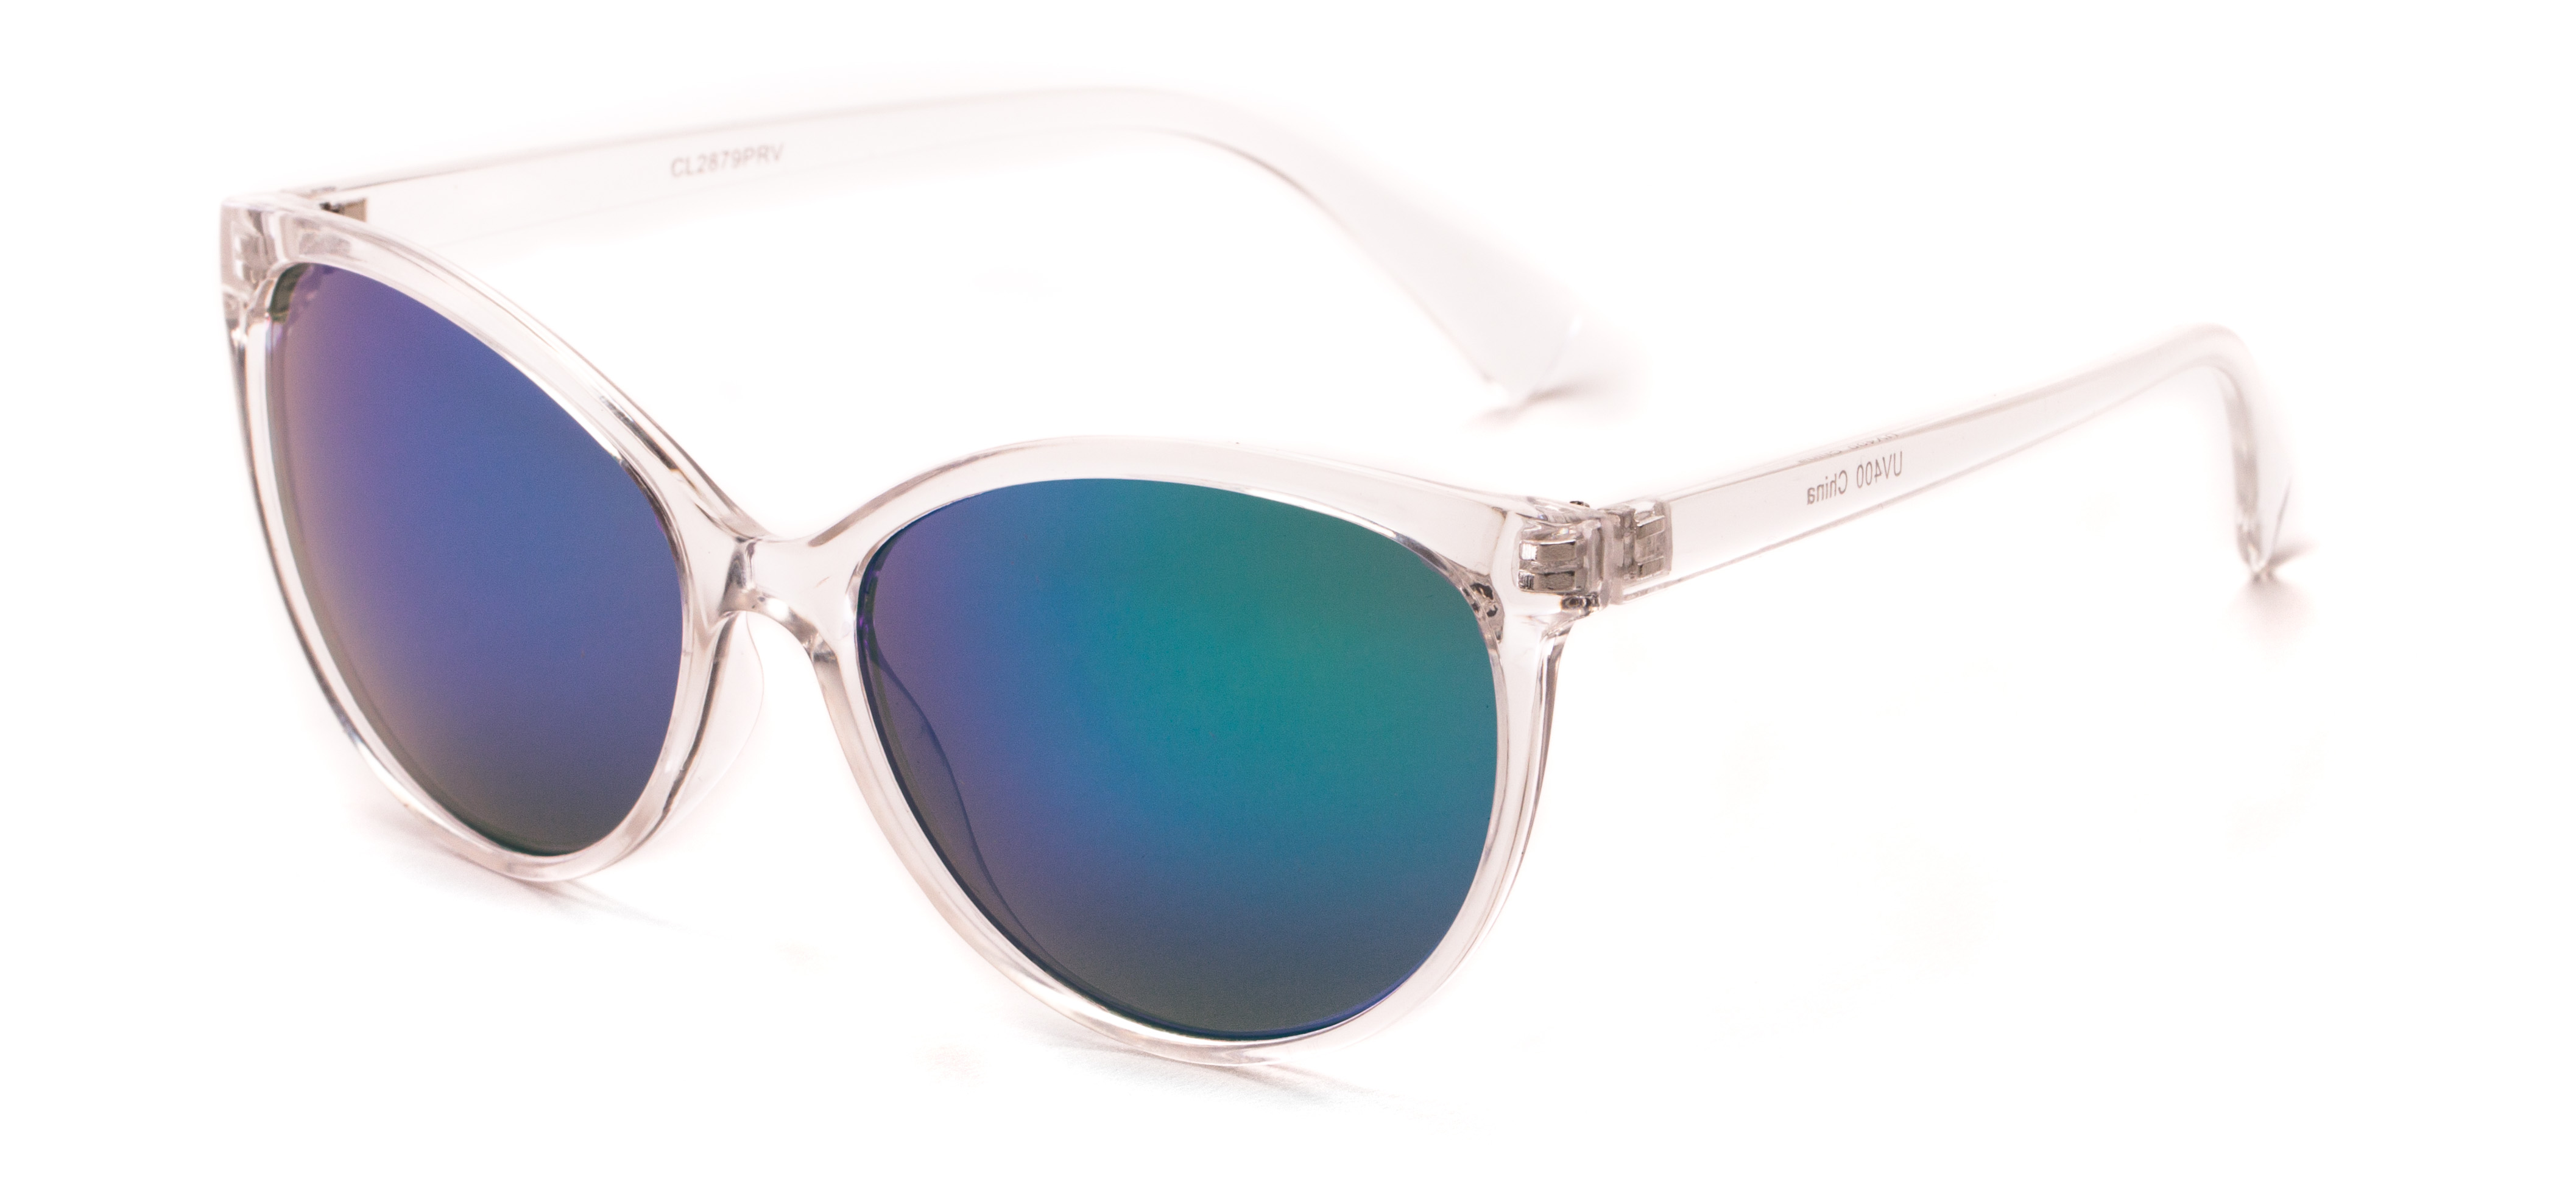 Paloma #2879 Clear Frame with Purple/Green Mirrored Lenses - High ...